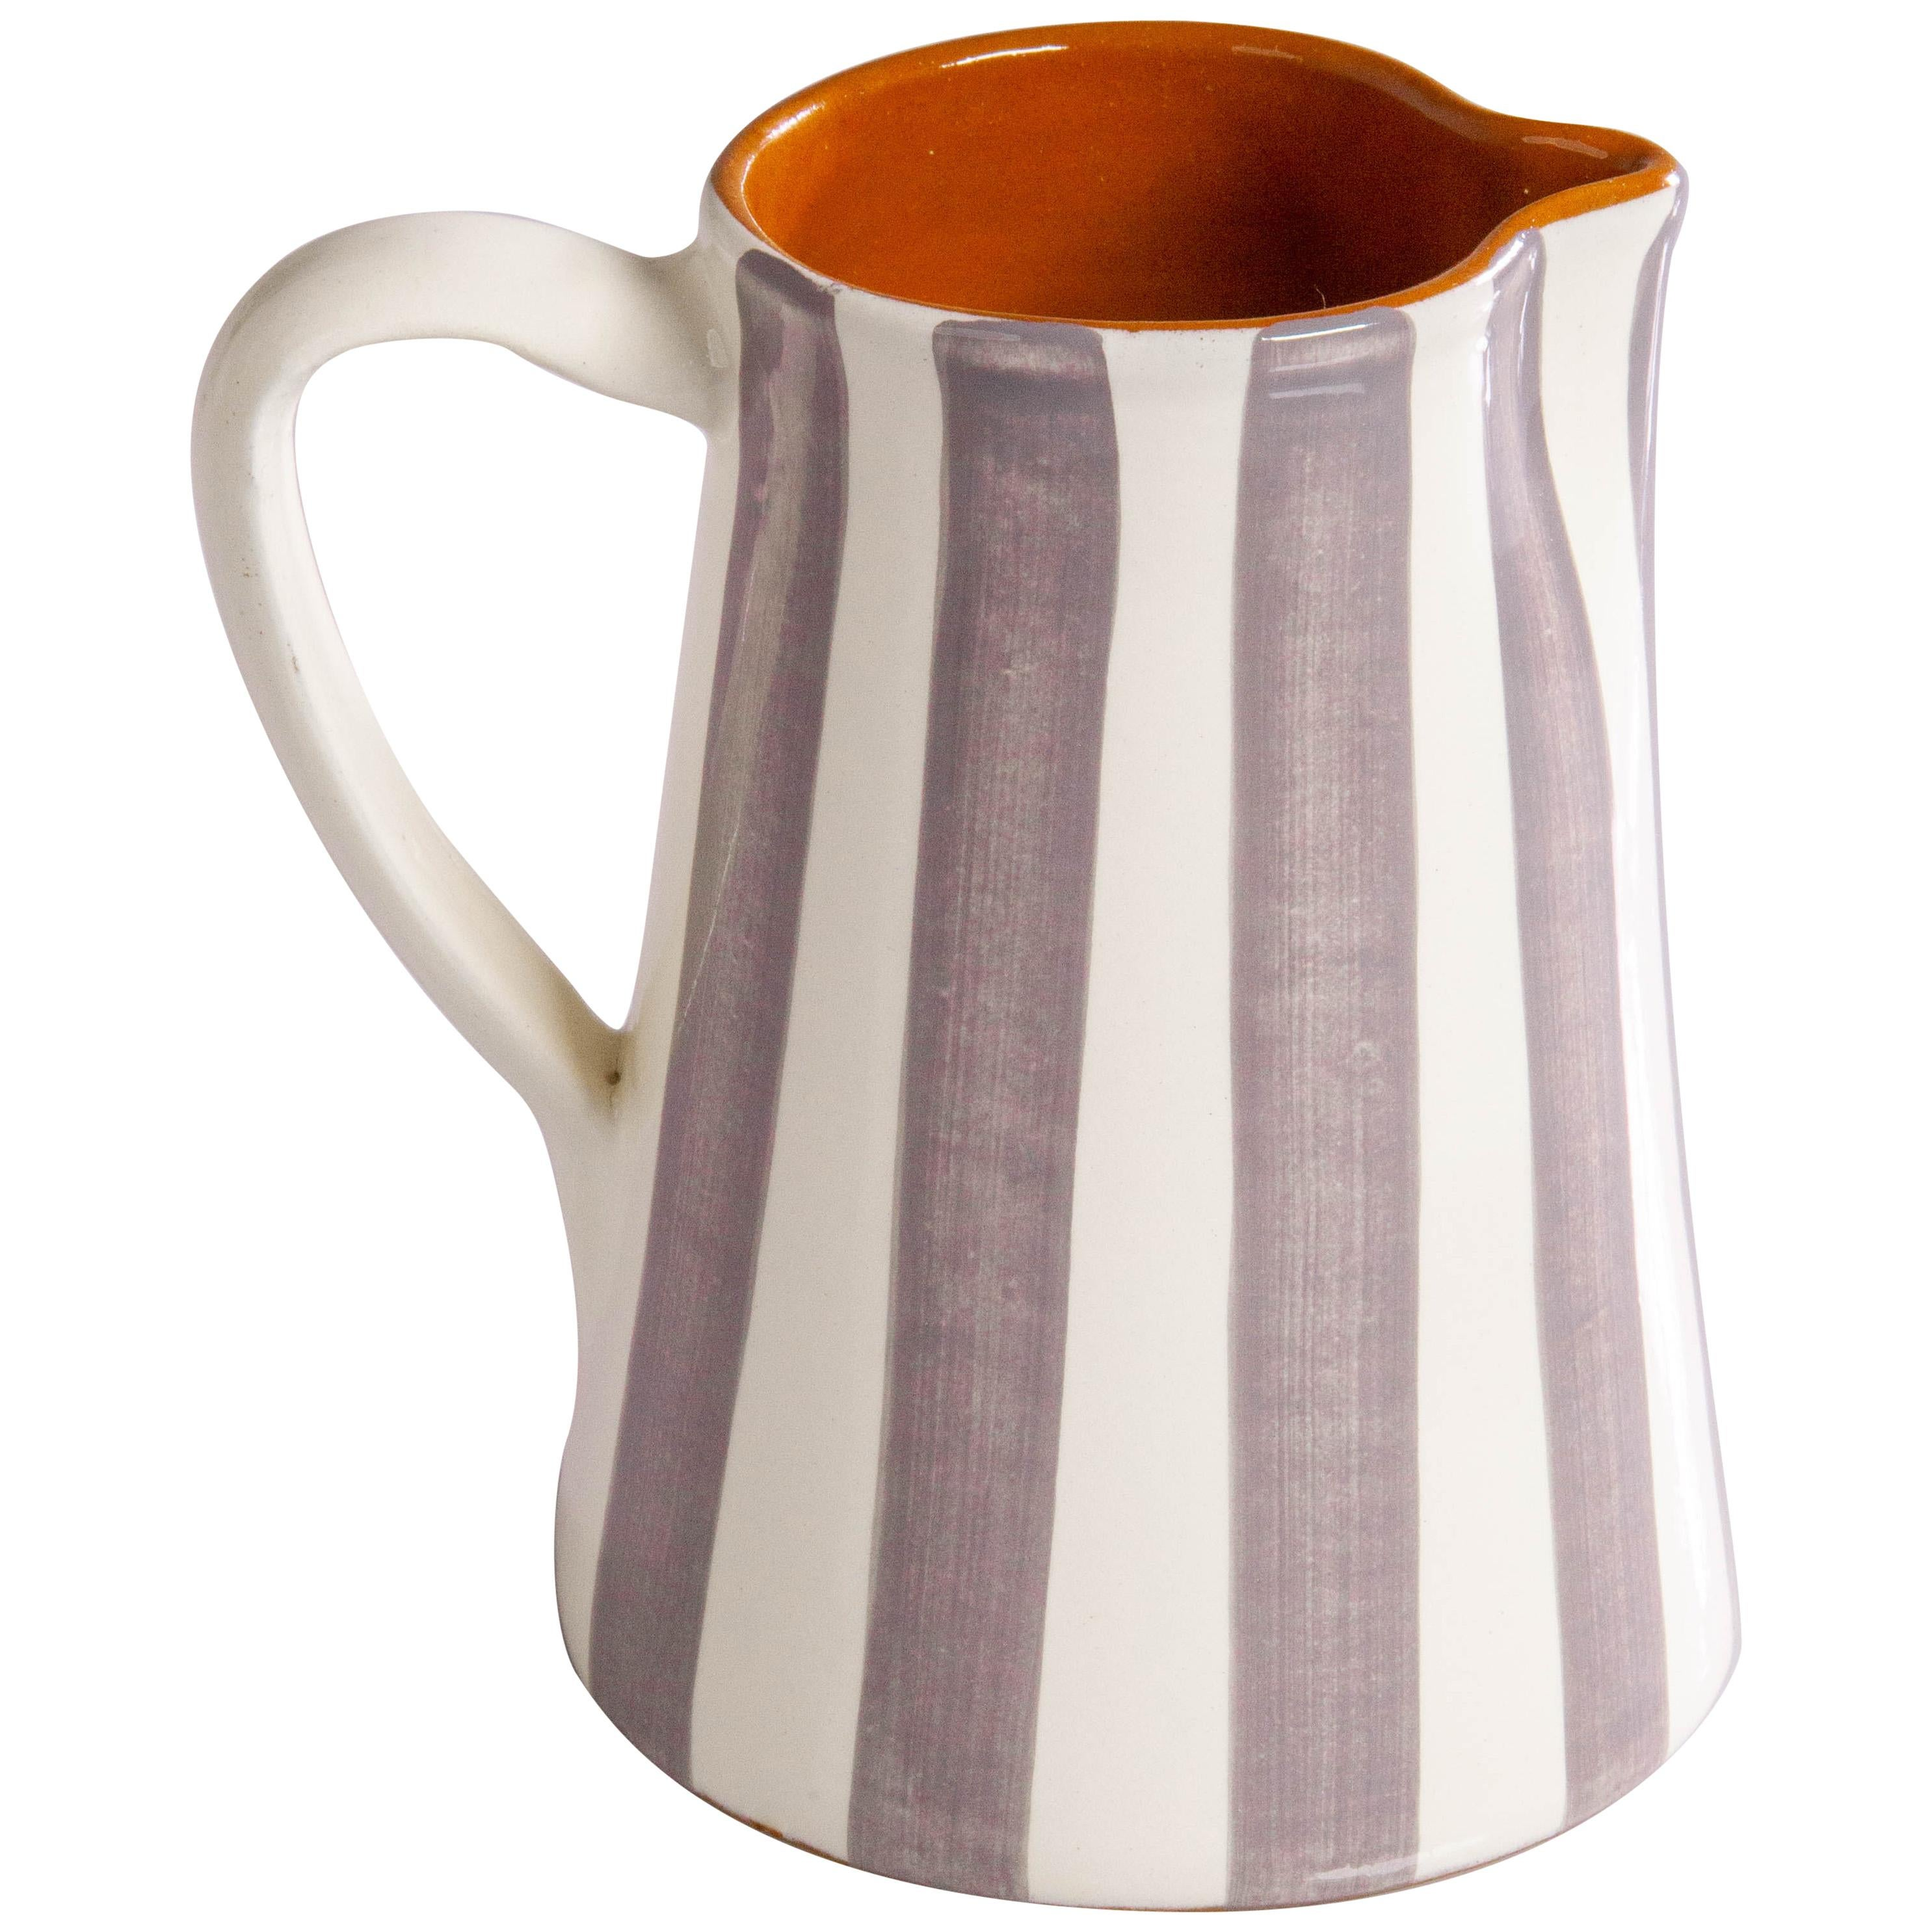 Handmade Ceramic Striped Jug with Graphic Grey and White Design, in Stock